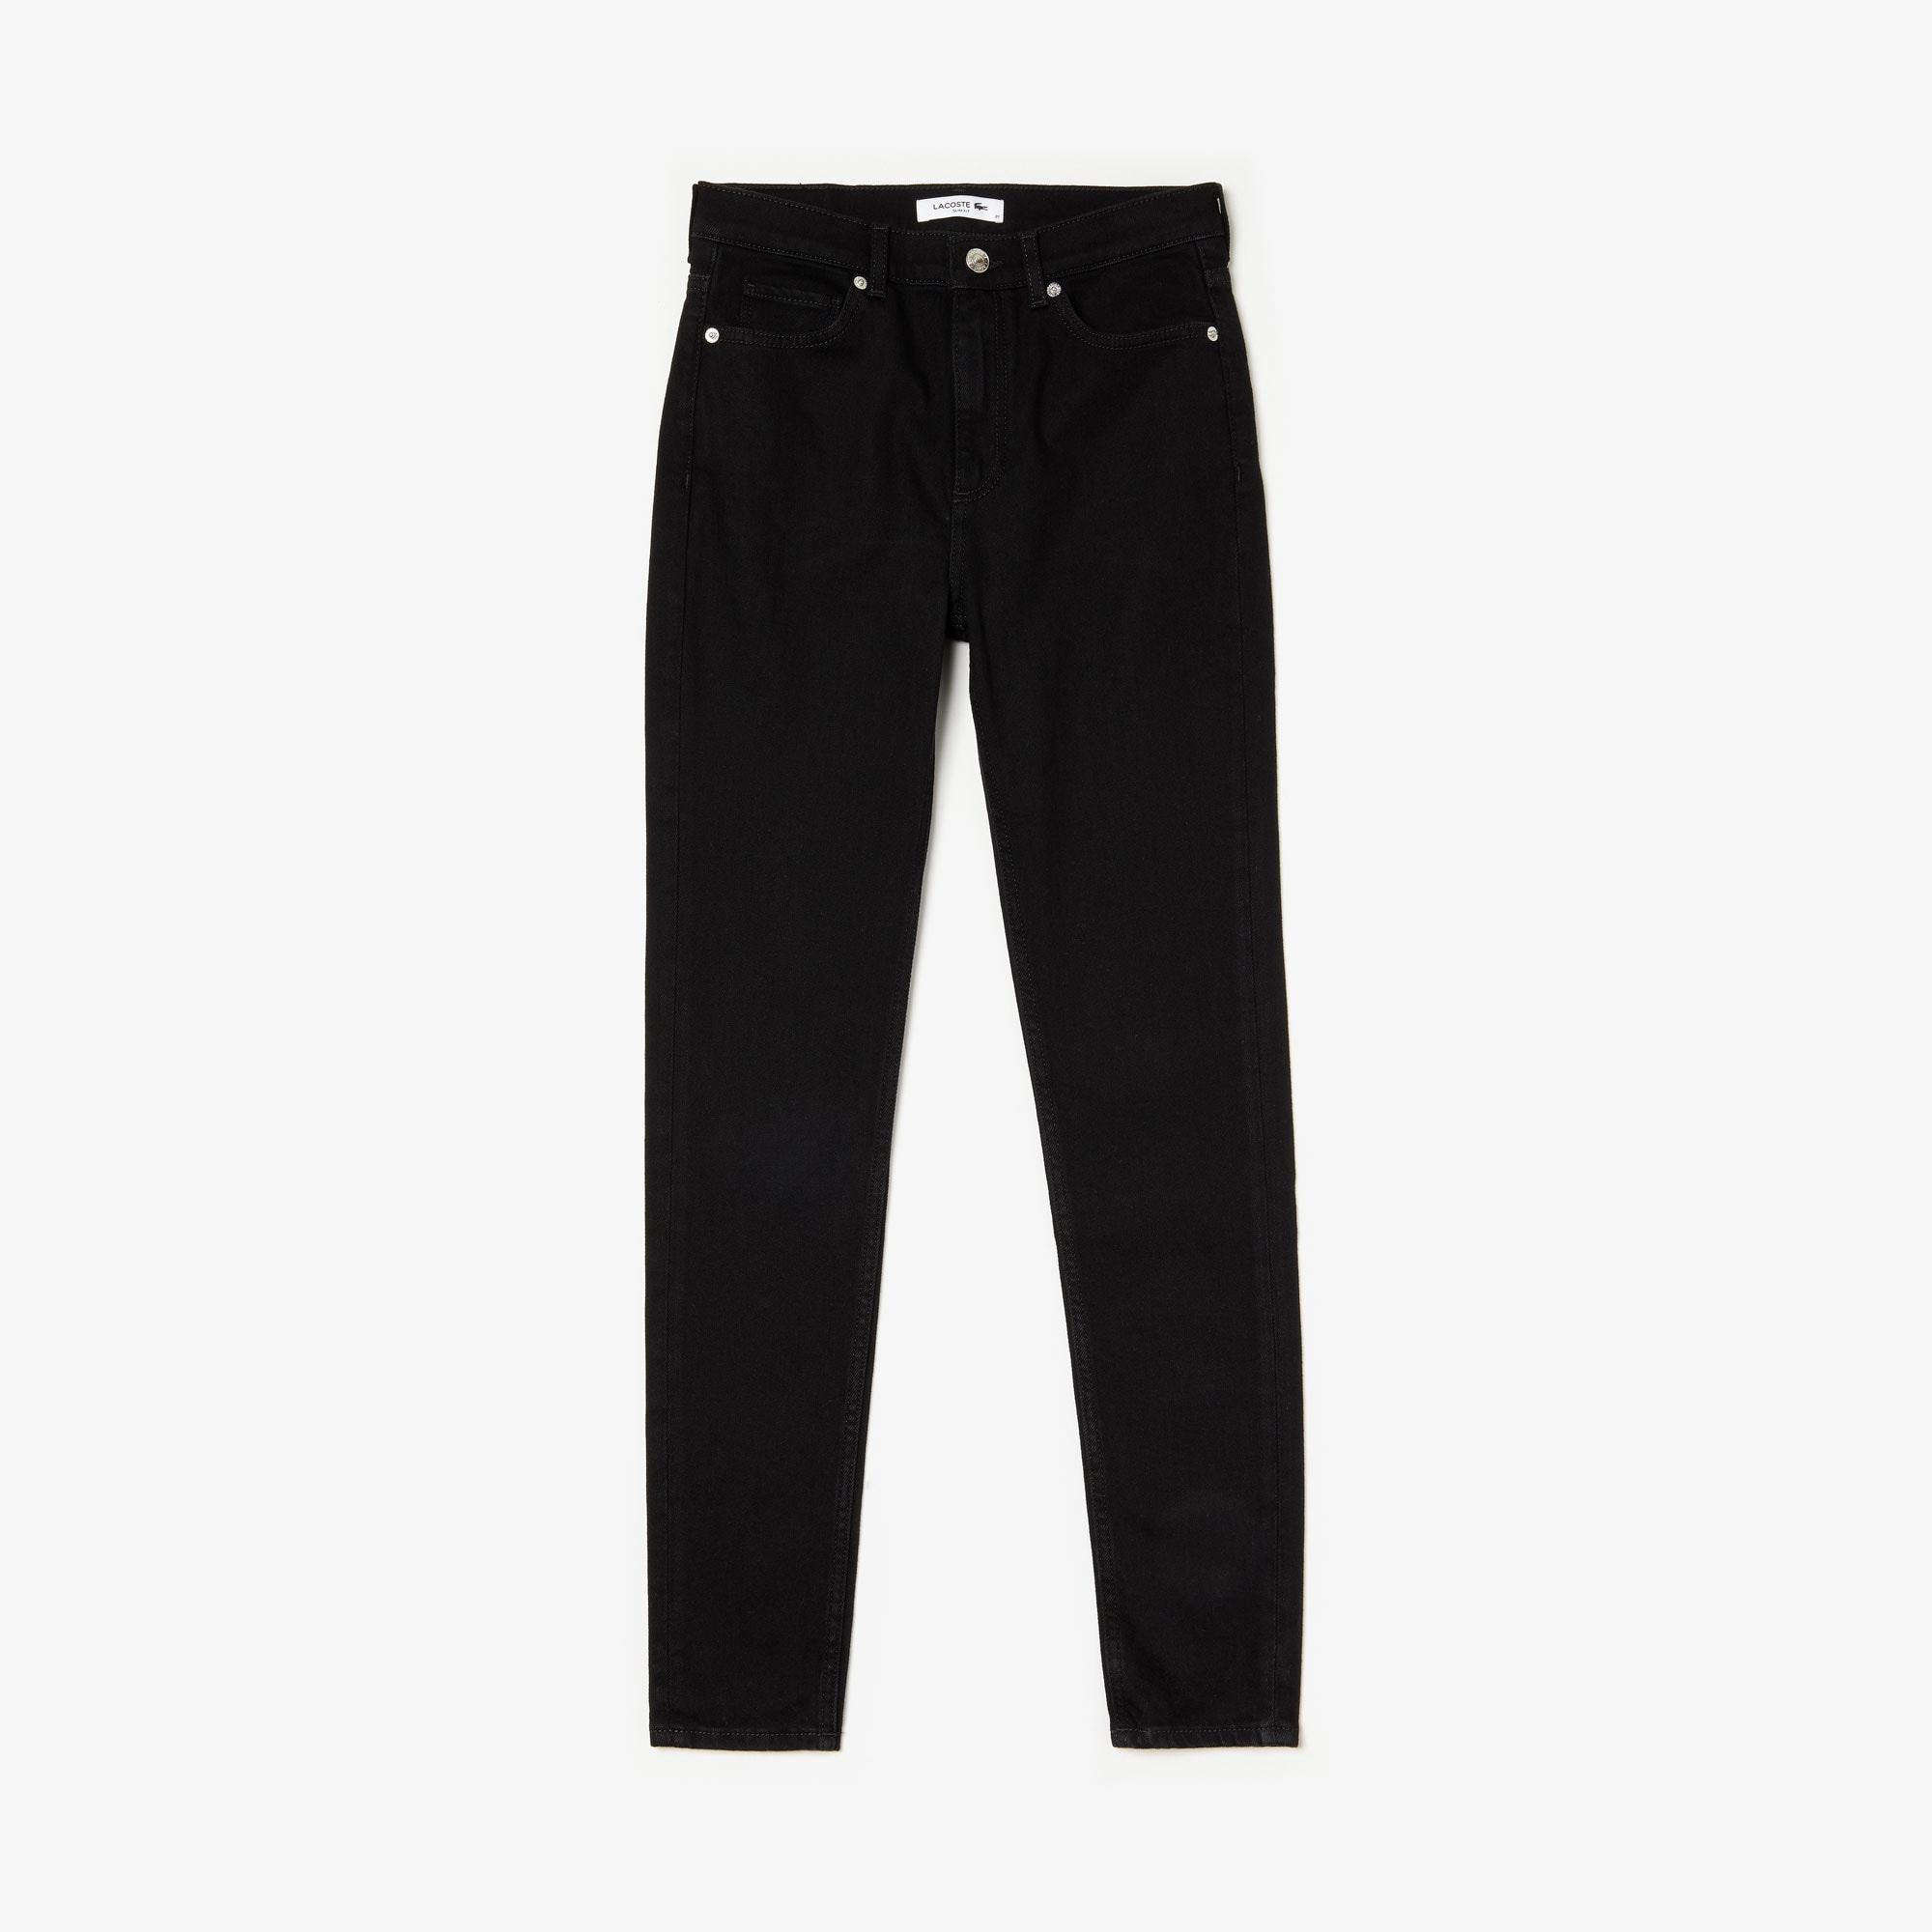 Women's Cotton Skinny Fit Jeans